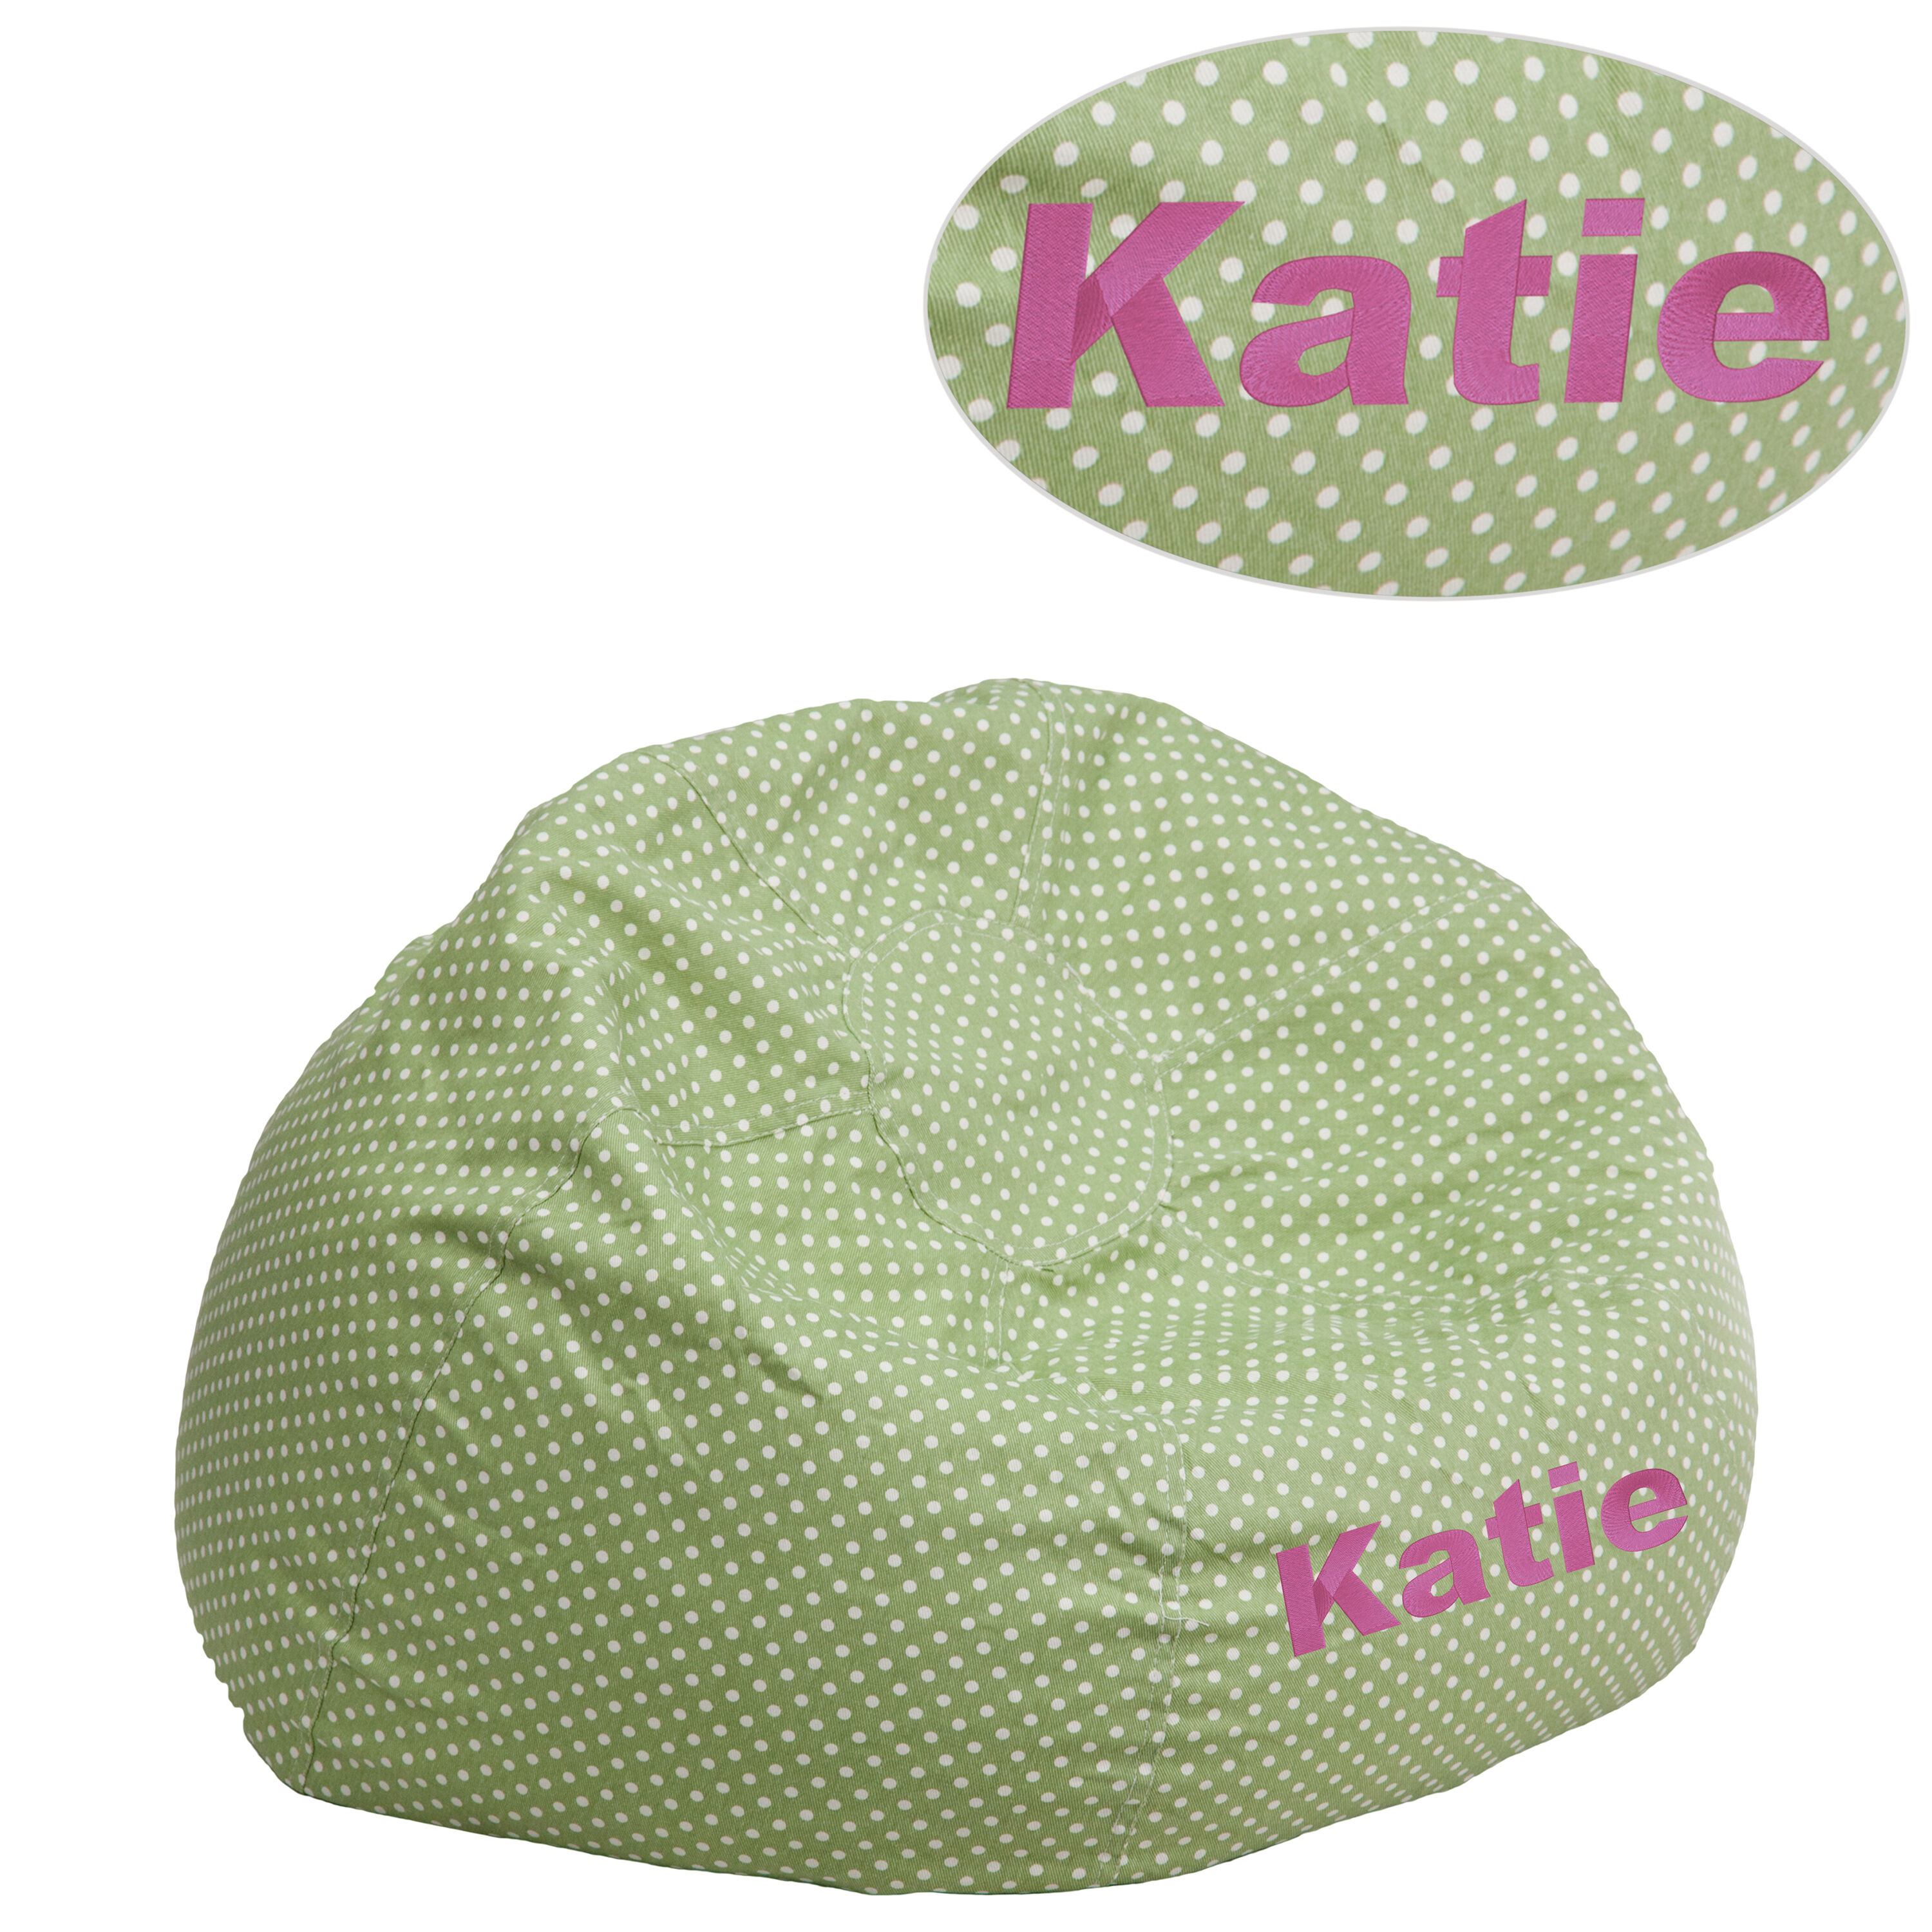 ... Our Personalized Small Green Dot Kids Bean Bag Chair Is On Sale Now.